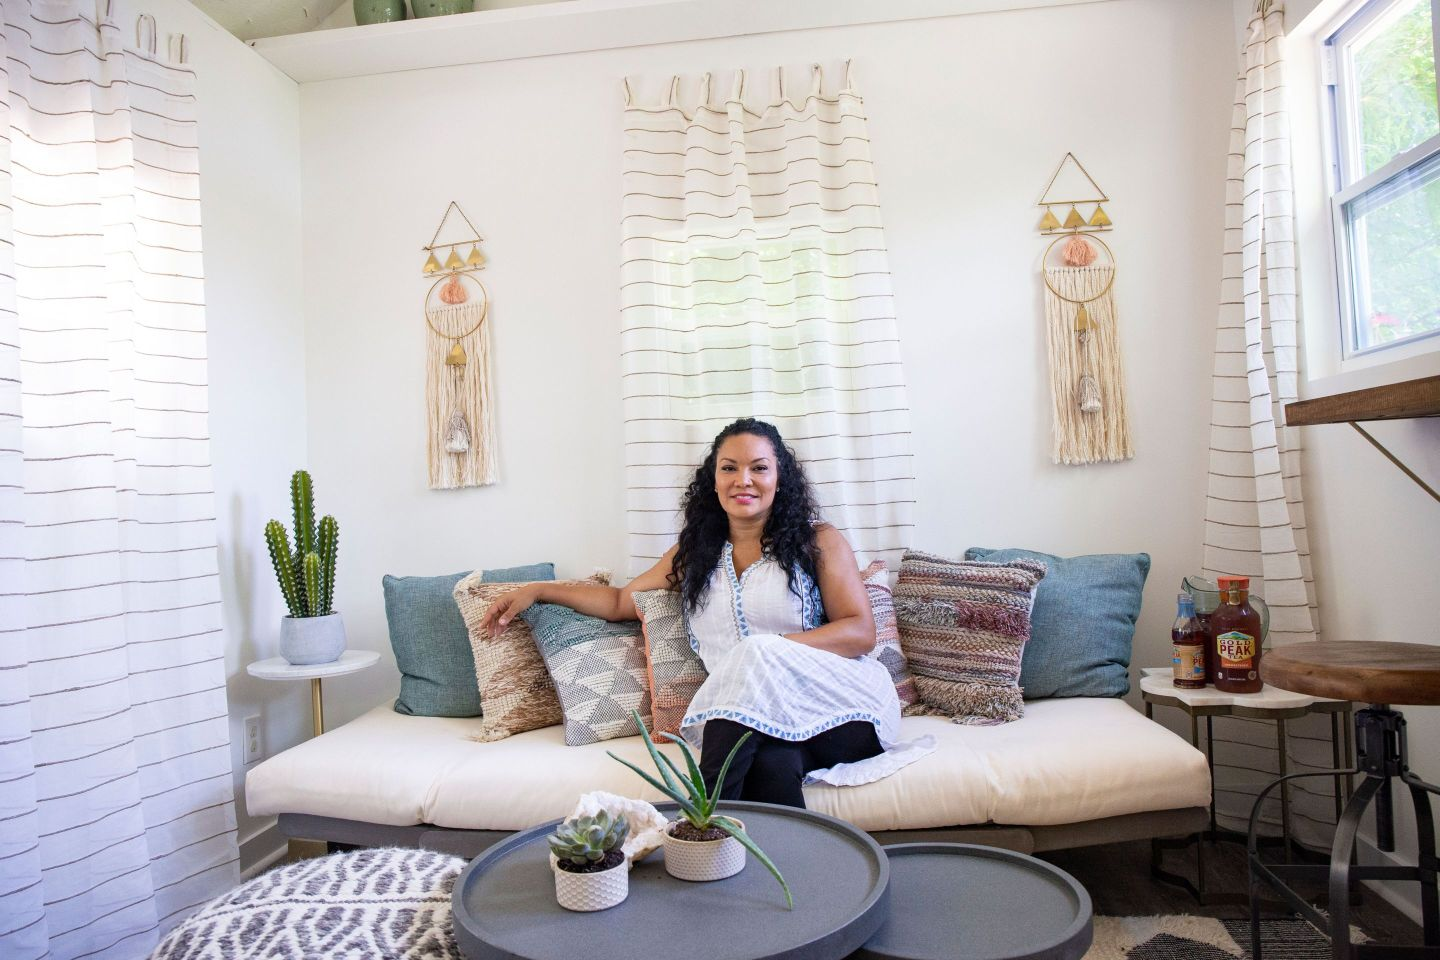 Egypt Sherrod's Tips to Create your own Backyard Summer Sanctuary (TEA Shed)